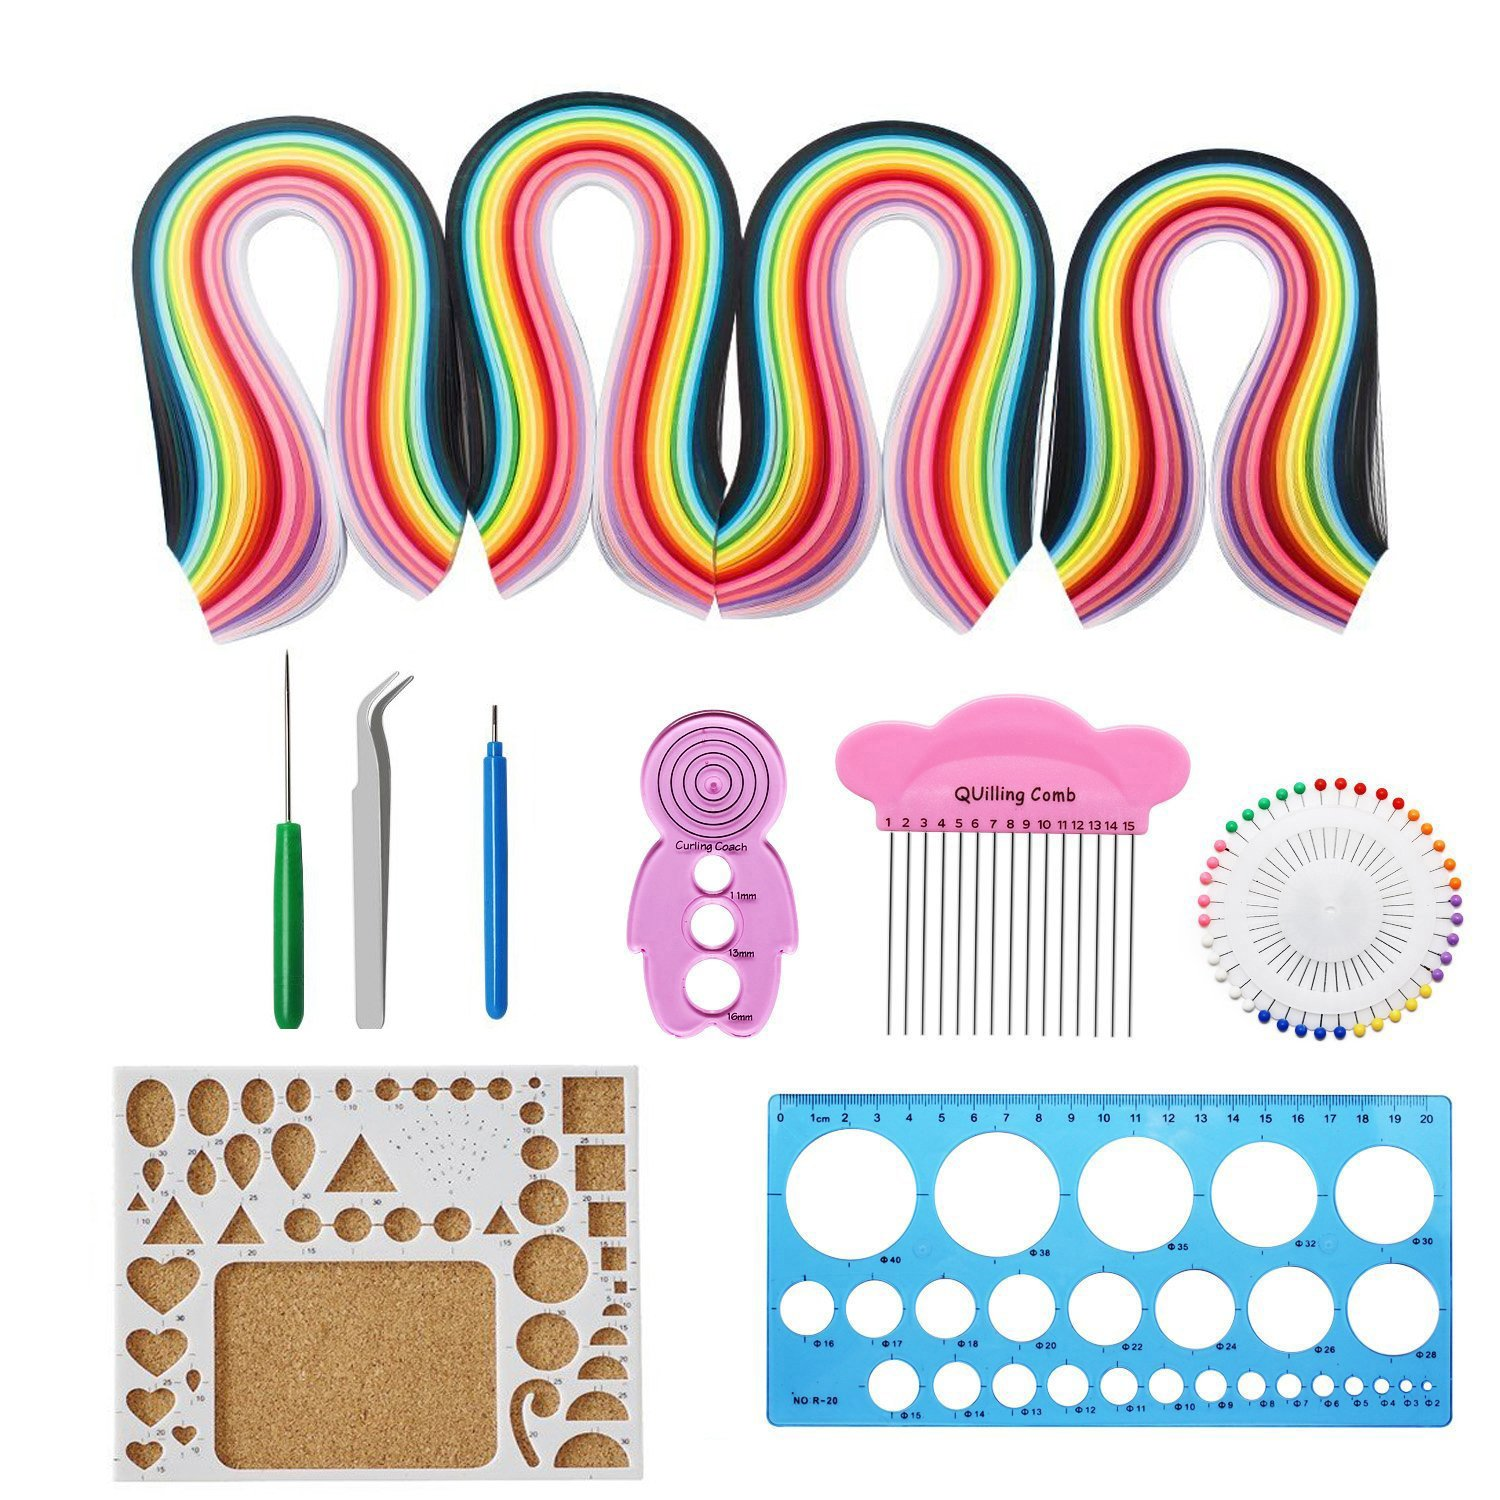 Paper quilling set, Twshiny 1040 pezzi quilling Art strisce in 26 colori con quilling Tools